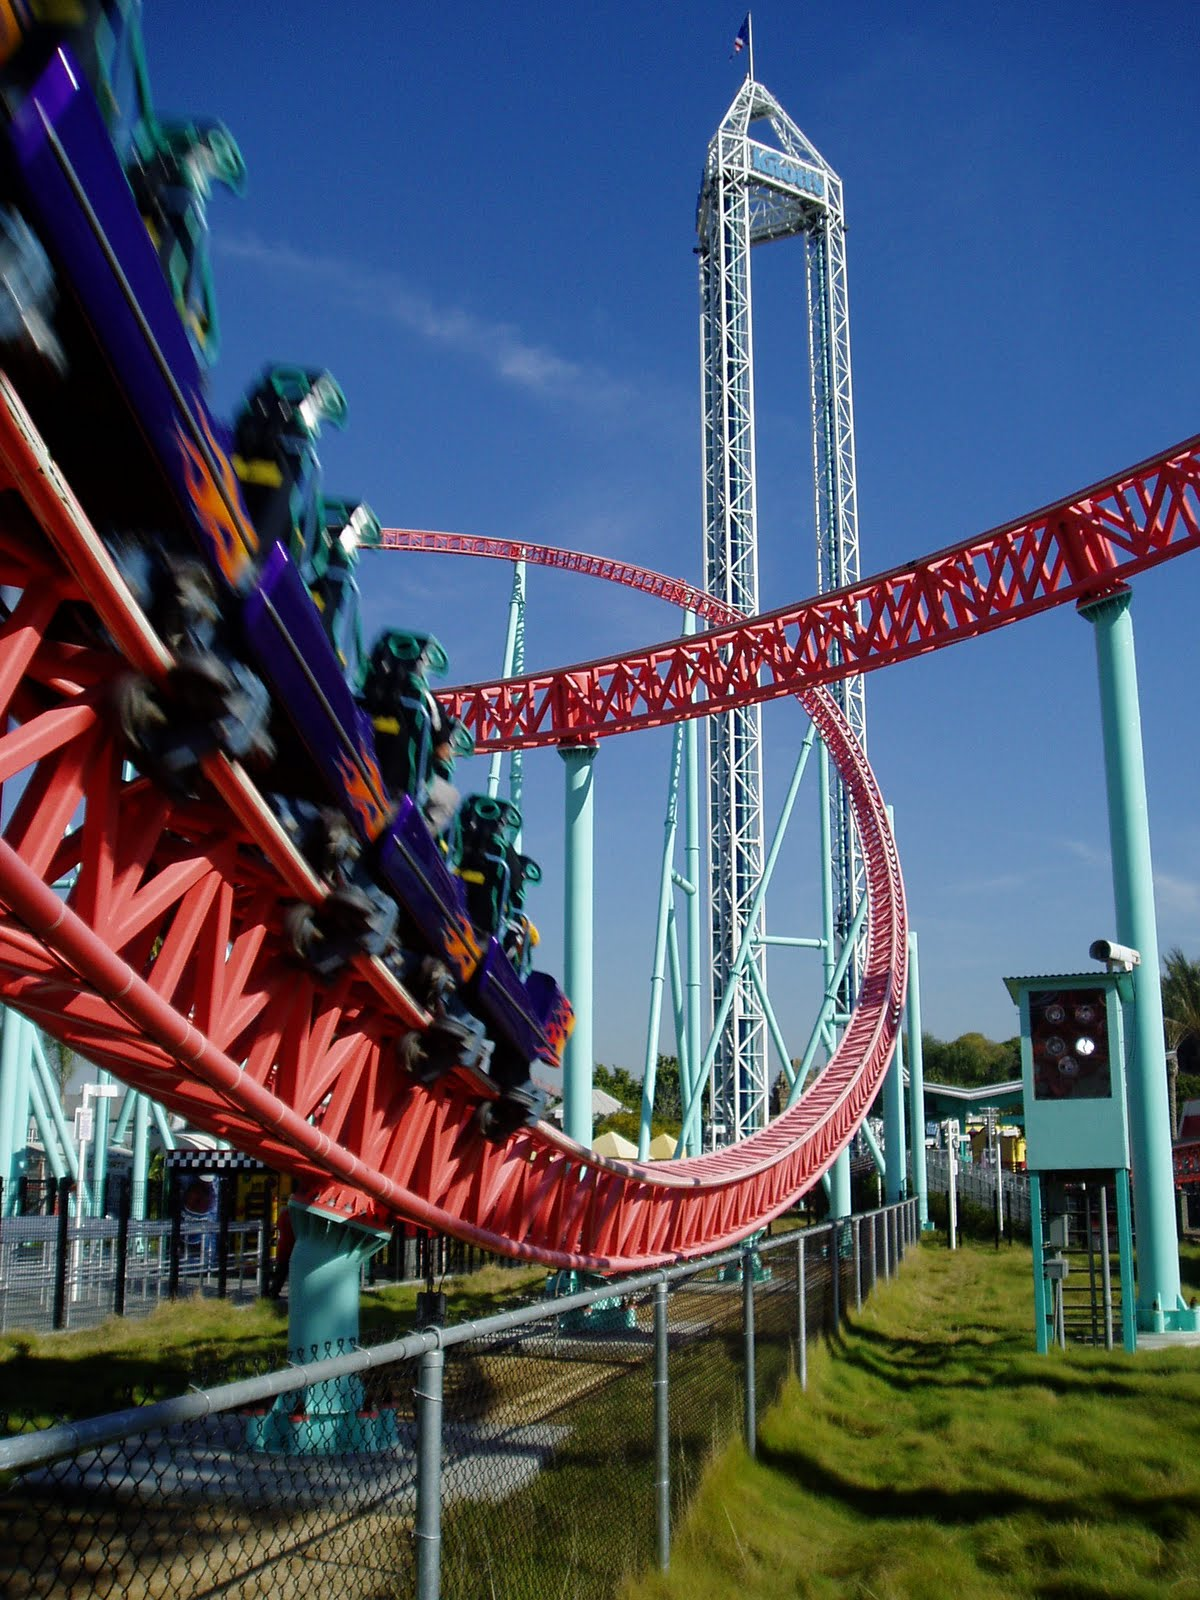 Rollercoaster: *Pictures*